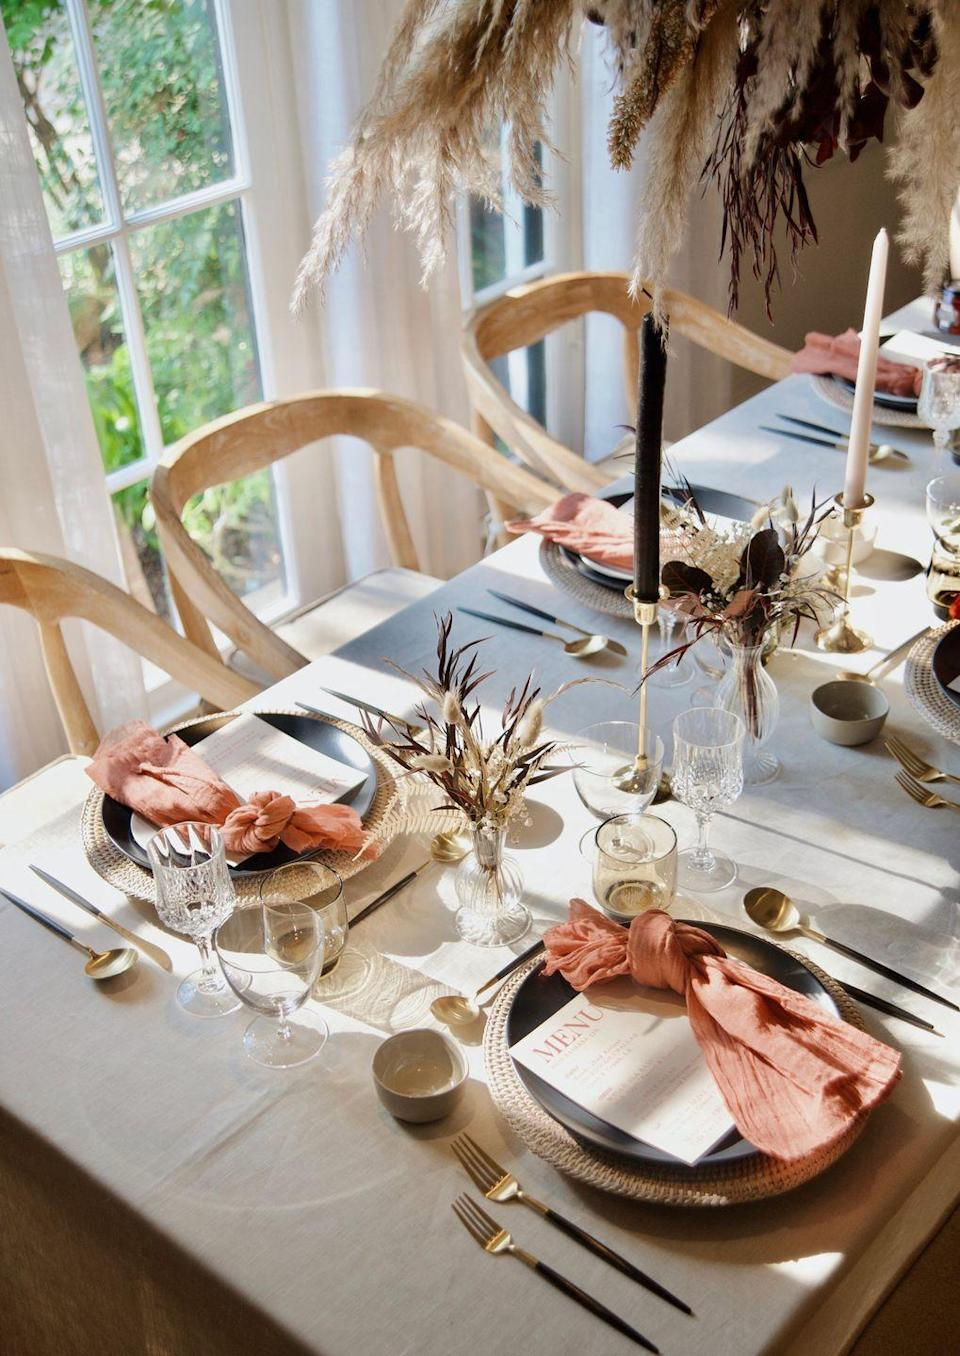 """<p>Use blush pink and navy blue for a modern take on a Thanksgiving table. The gold flatware adds a bit of festivity, while the dried florals bring a natural, laid-back touch. </p><p><a class=""""link rapid-noclick-resp"""" href=""""https://www.lifeslookingood.com/blog/rosh-hashanah-tablescape"""" rel=""""nofollow noopener"""" target=""""_blank"""" data-ylk=""""slk:See more at Life's Looking Good"""">See more at Life's Looking Good</a></p>"""